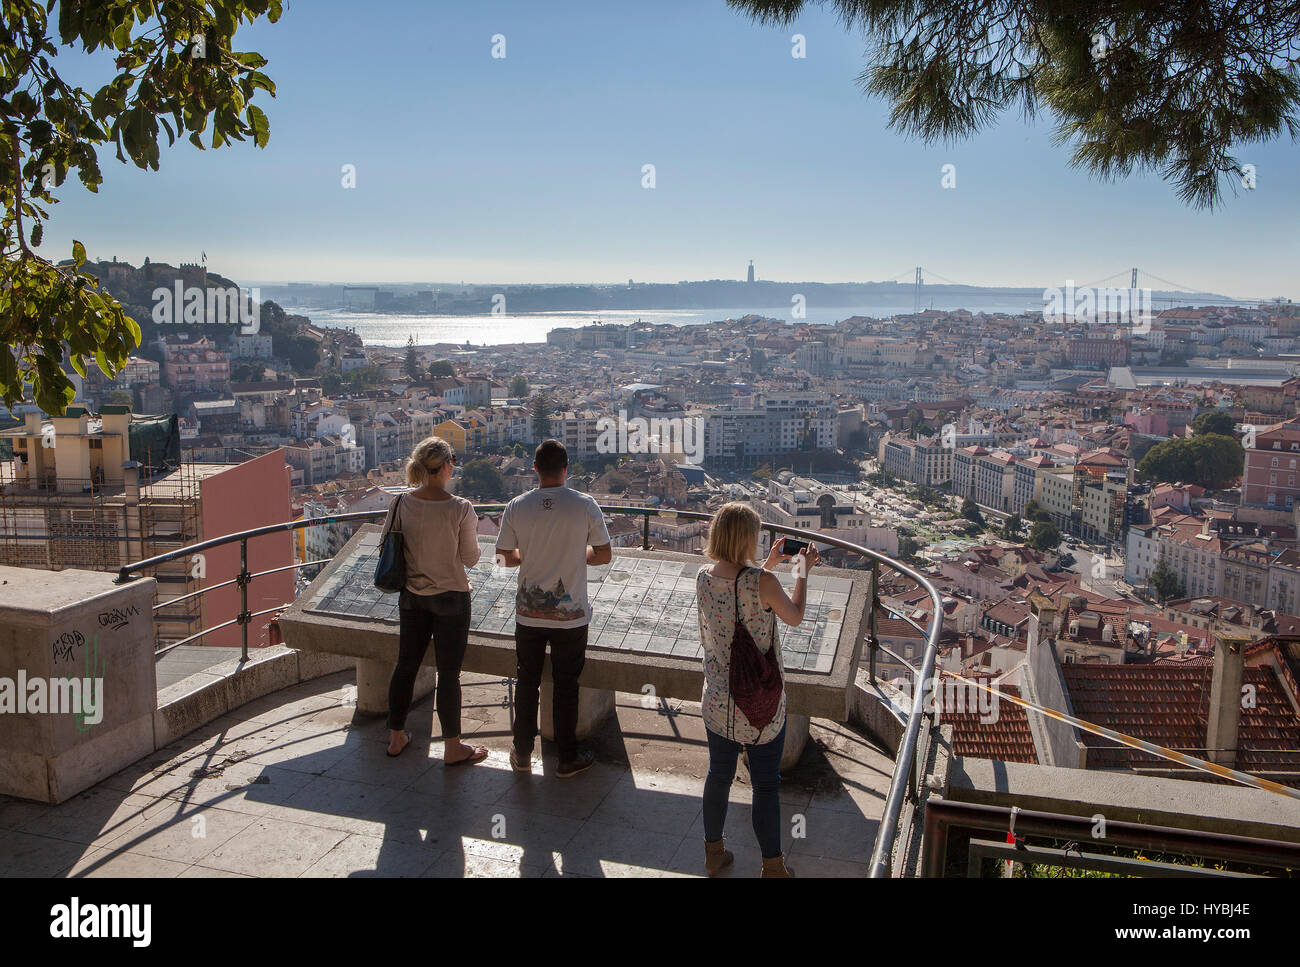 Miradouro Da Senhora Do Monte High Resolution Stock Photography And Images Alamy